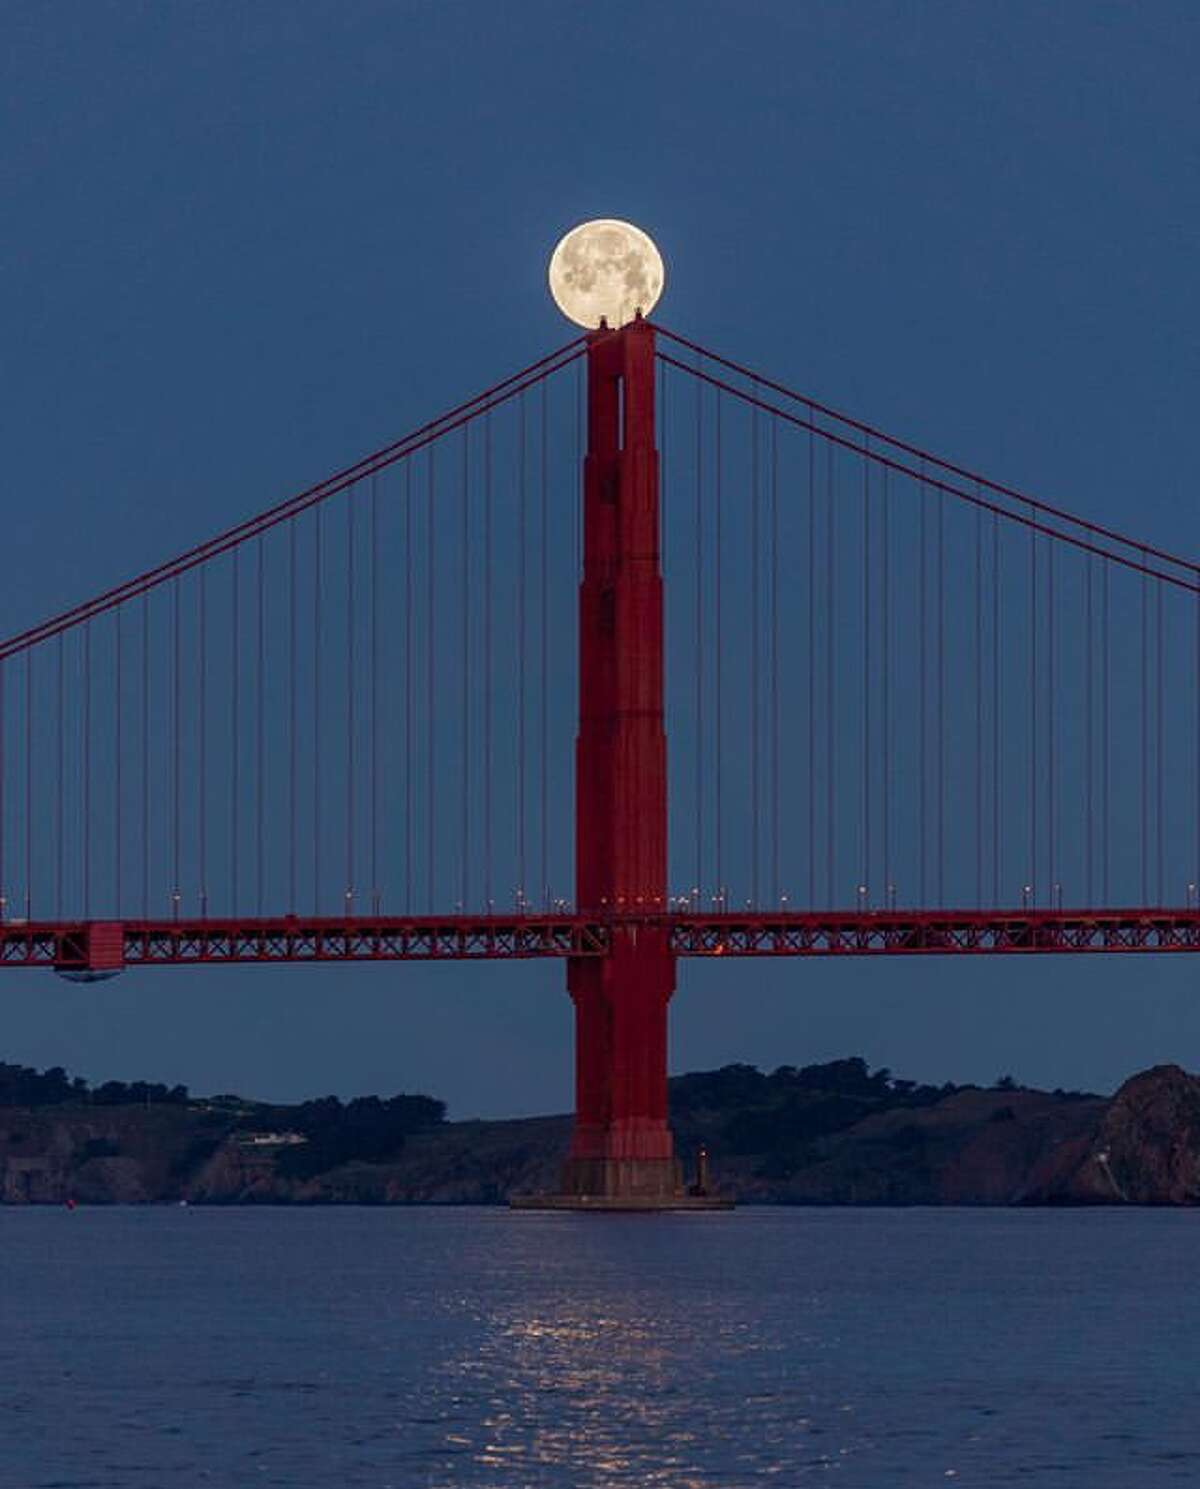 @dangallophotography found the Supermoon comes in contact with the Golden Gate Bridge.